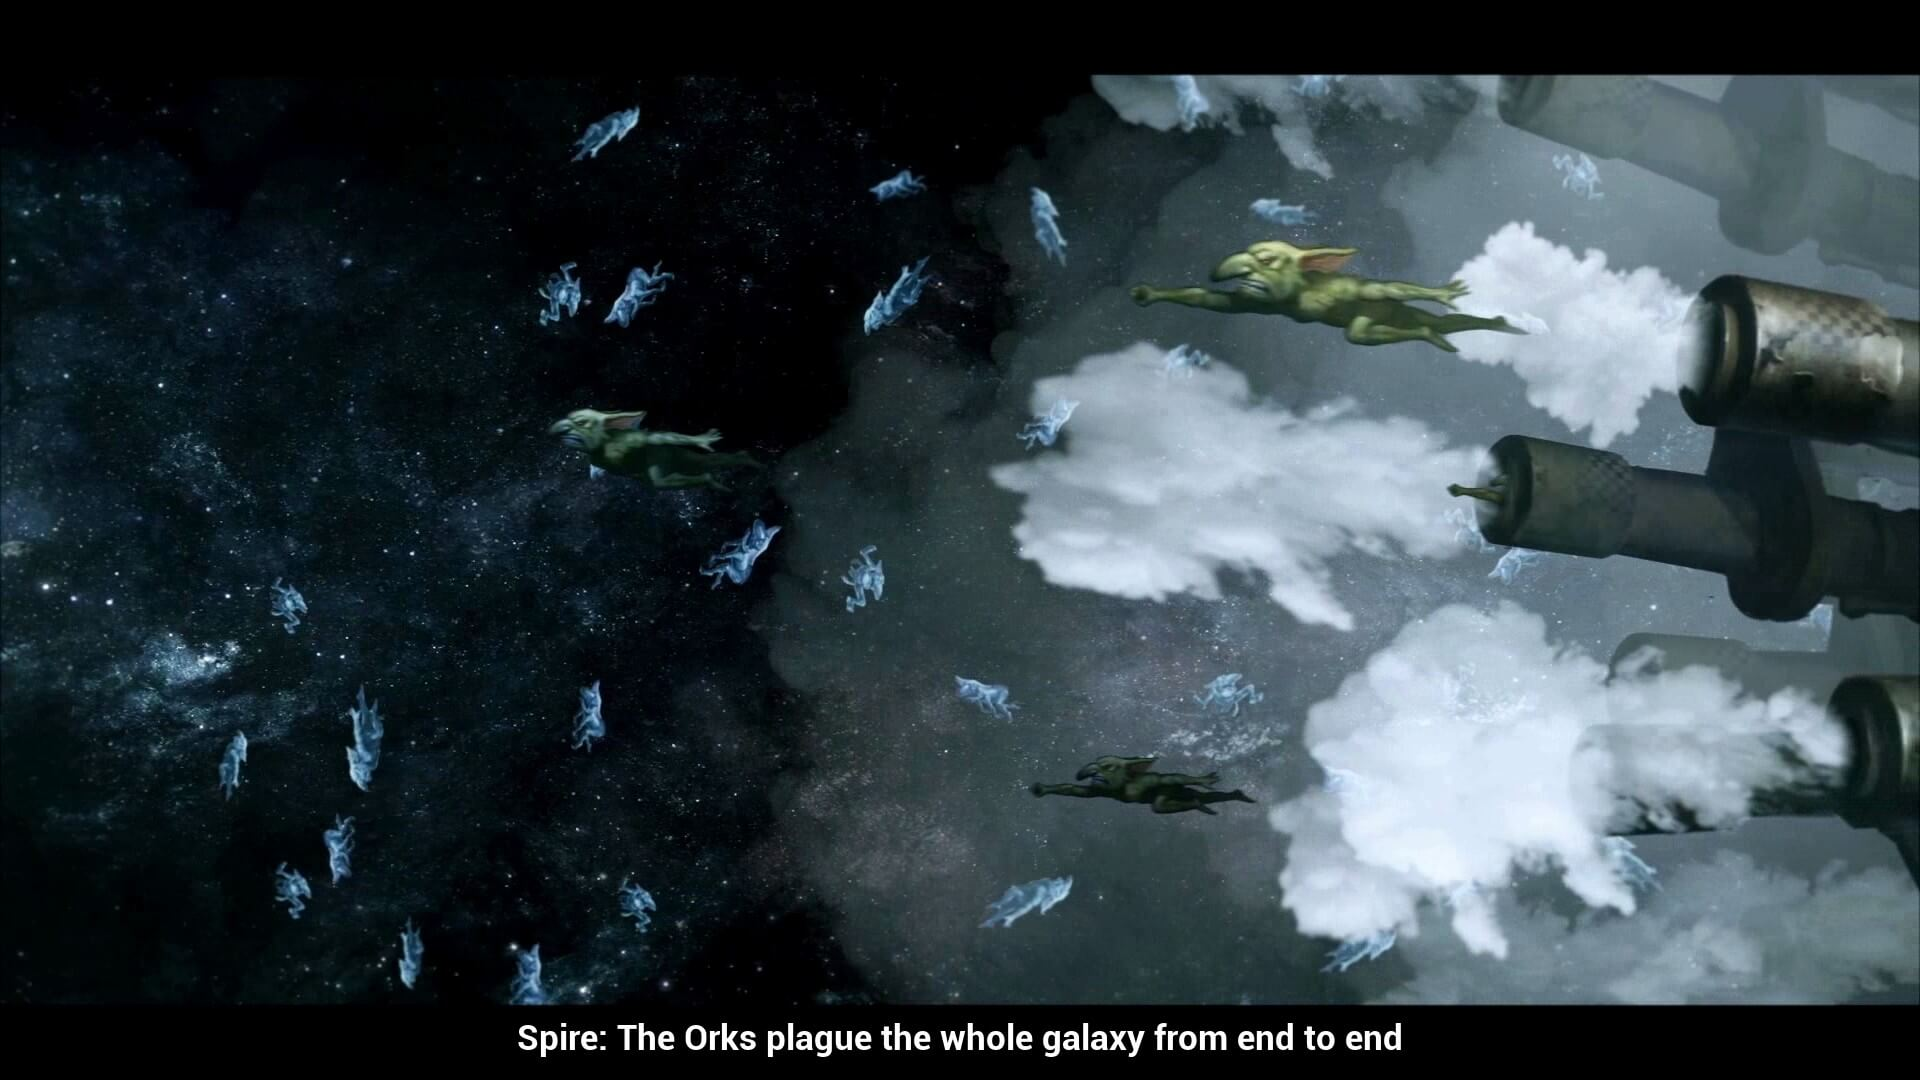 The Orks also launch goblins as missiles.